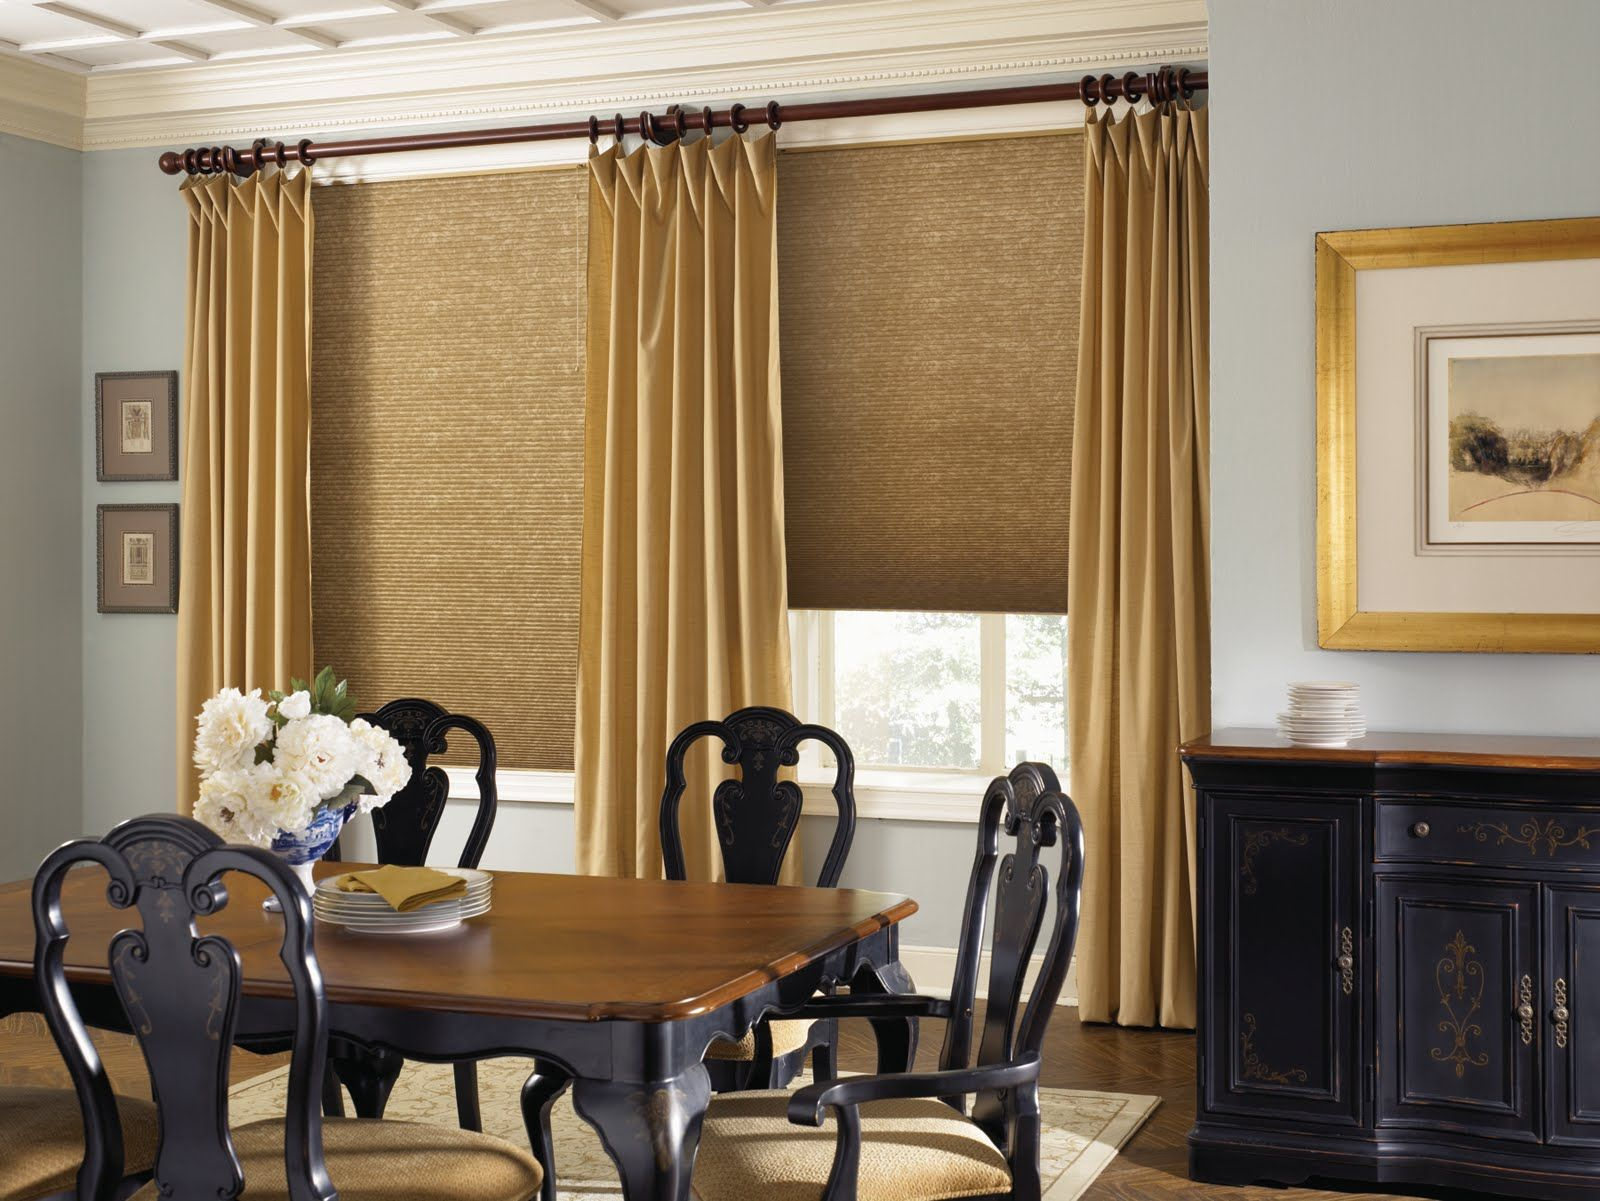 large treatments making roman design blinds shades shade window home interior dep windows cordless bay ideas depot for